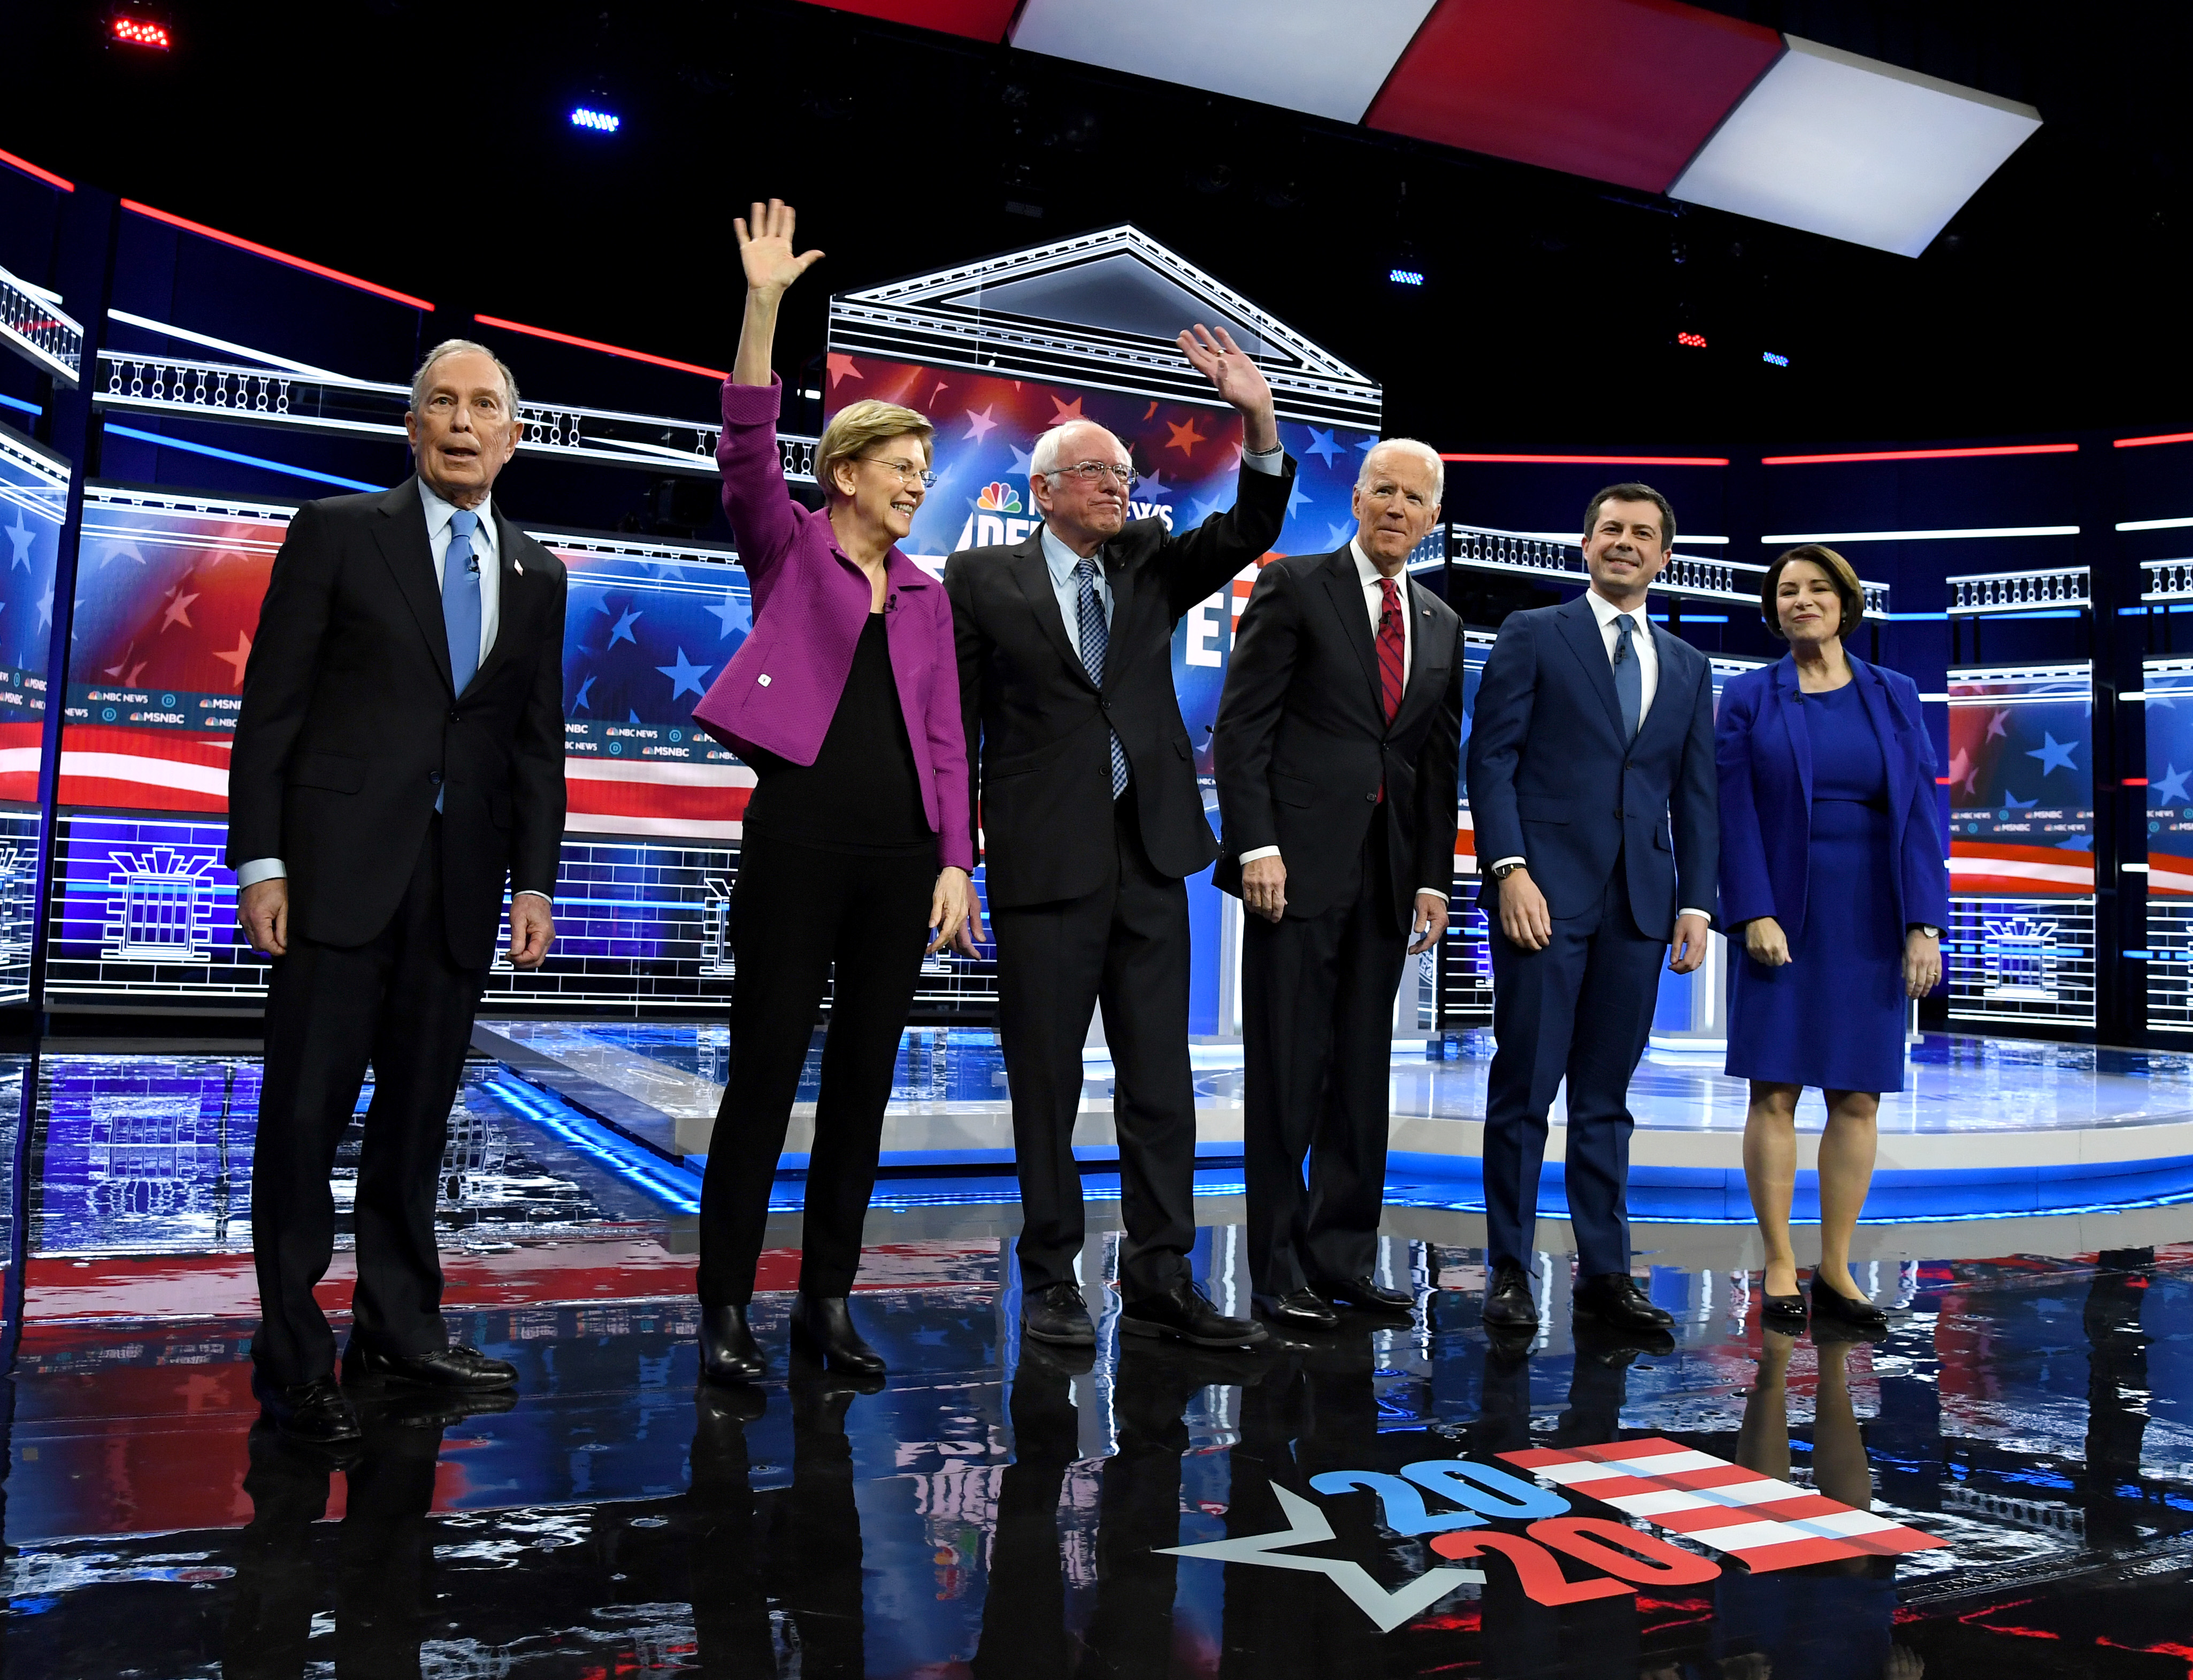 Democratic presidential candidates (L-R) former New York City Mayor Mike Bloomberg, Sen. Elizabeth Warren (D-MA), Sen. Bernie Sanders (I-VT), former Vice President Joe Biden, former South Bend, Indiana Mayor Pete Buttigieg and Sen. Amy Klobuchar (D-MN) stand onstage at the start of the Democratic presidential primary debate at Paris Las Vegas on February 19, 2020 in Las Vegas, Nevada. (Ethan Miller/Getty Images)